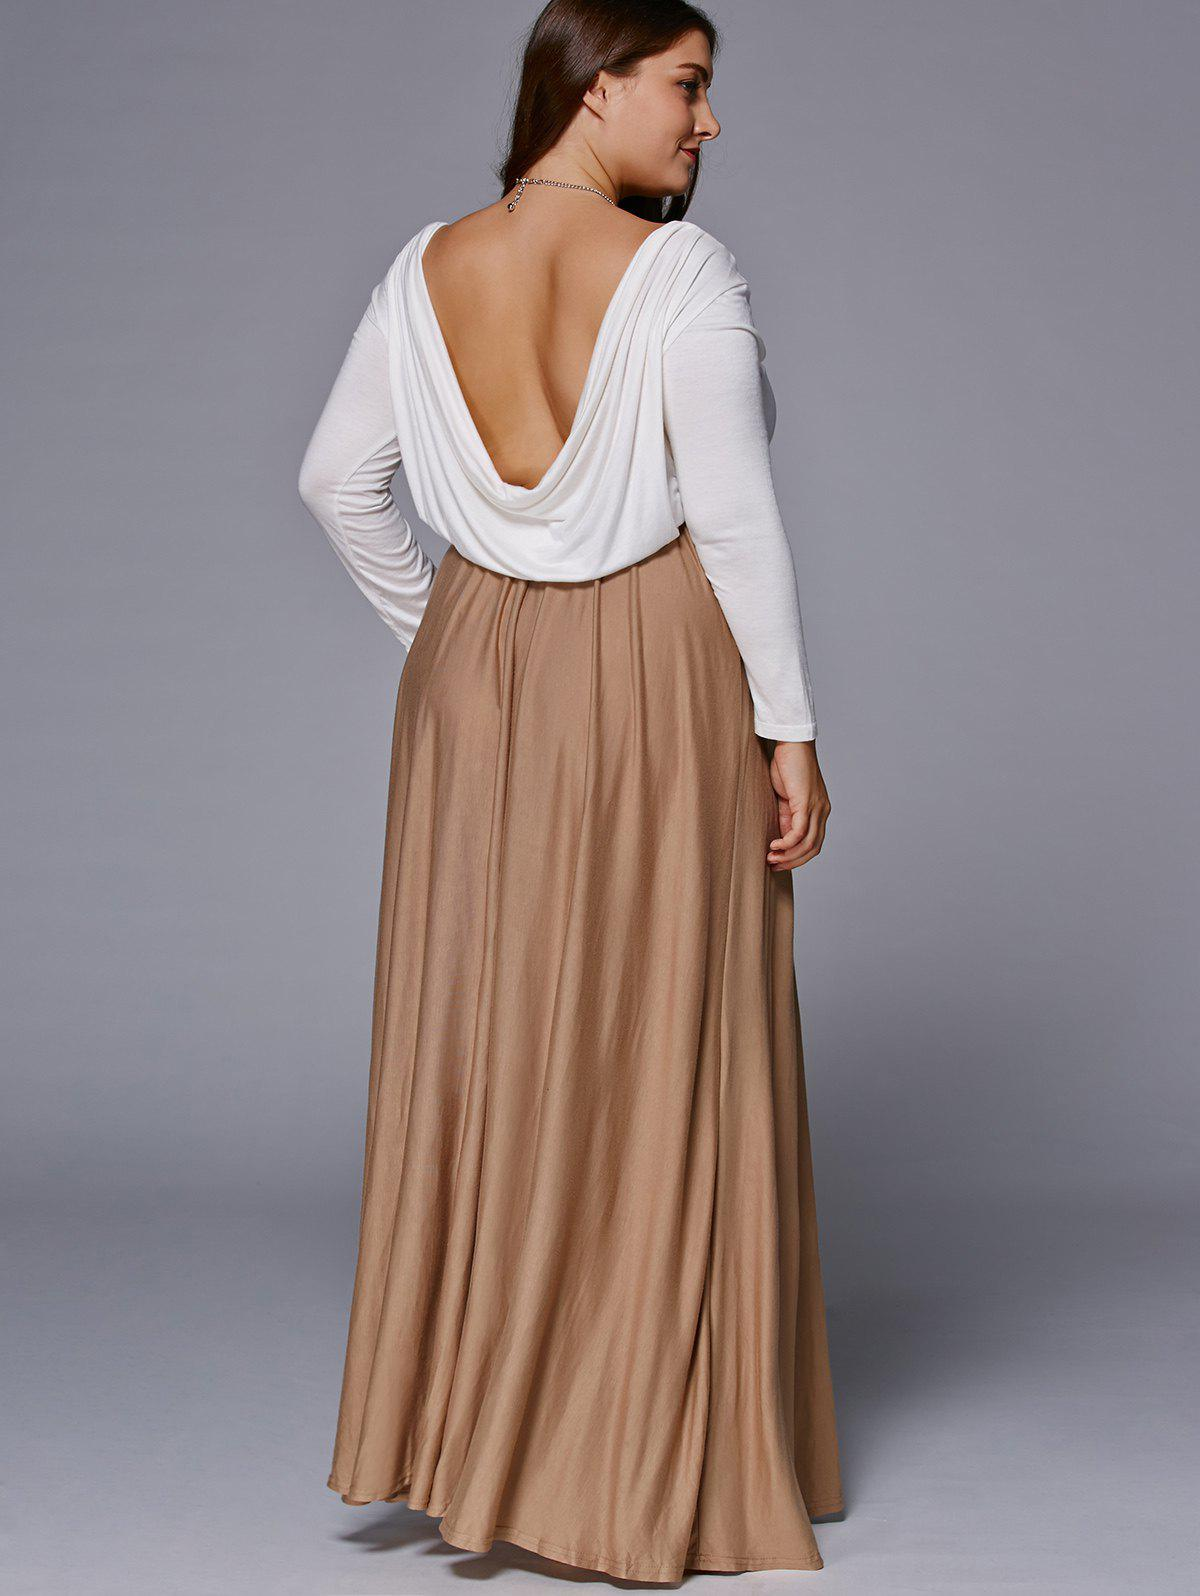 Chic Long Sleeve Plus Size Maxi Dress - COFFEE 5XL